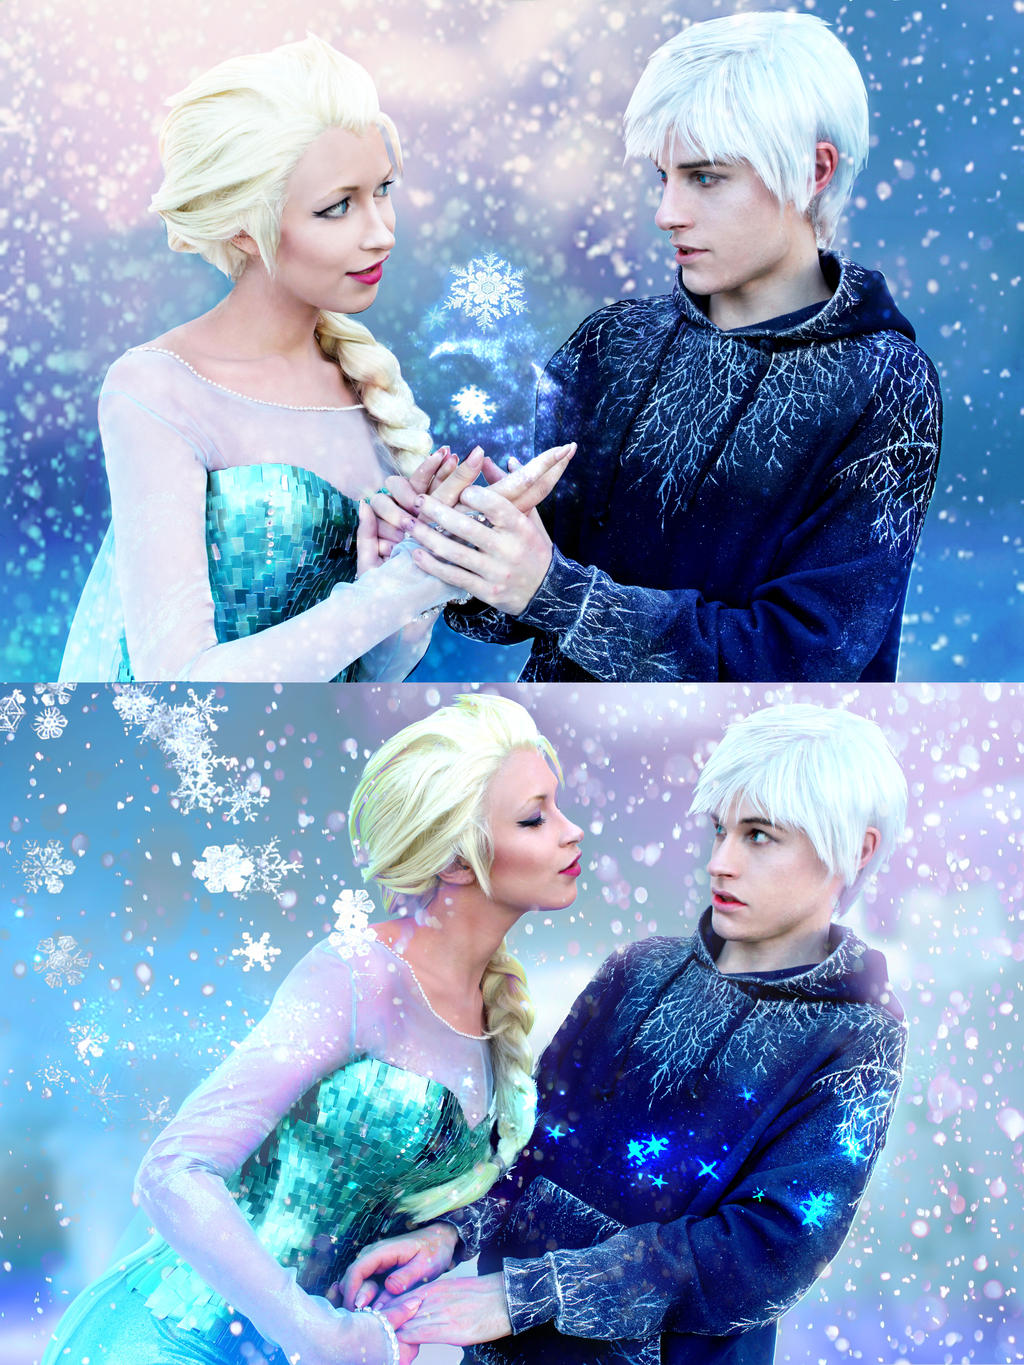 frost and cosplay Jack elsa